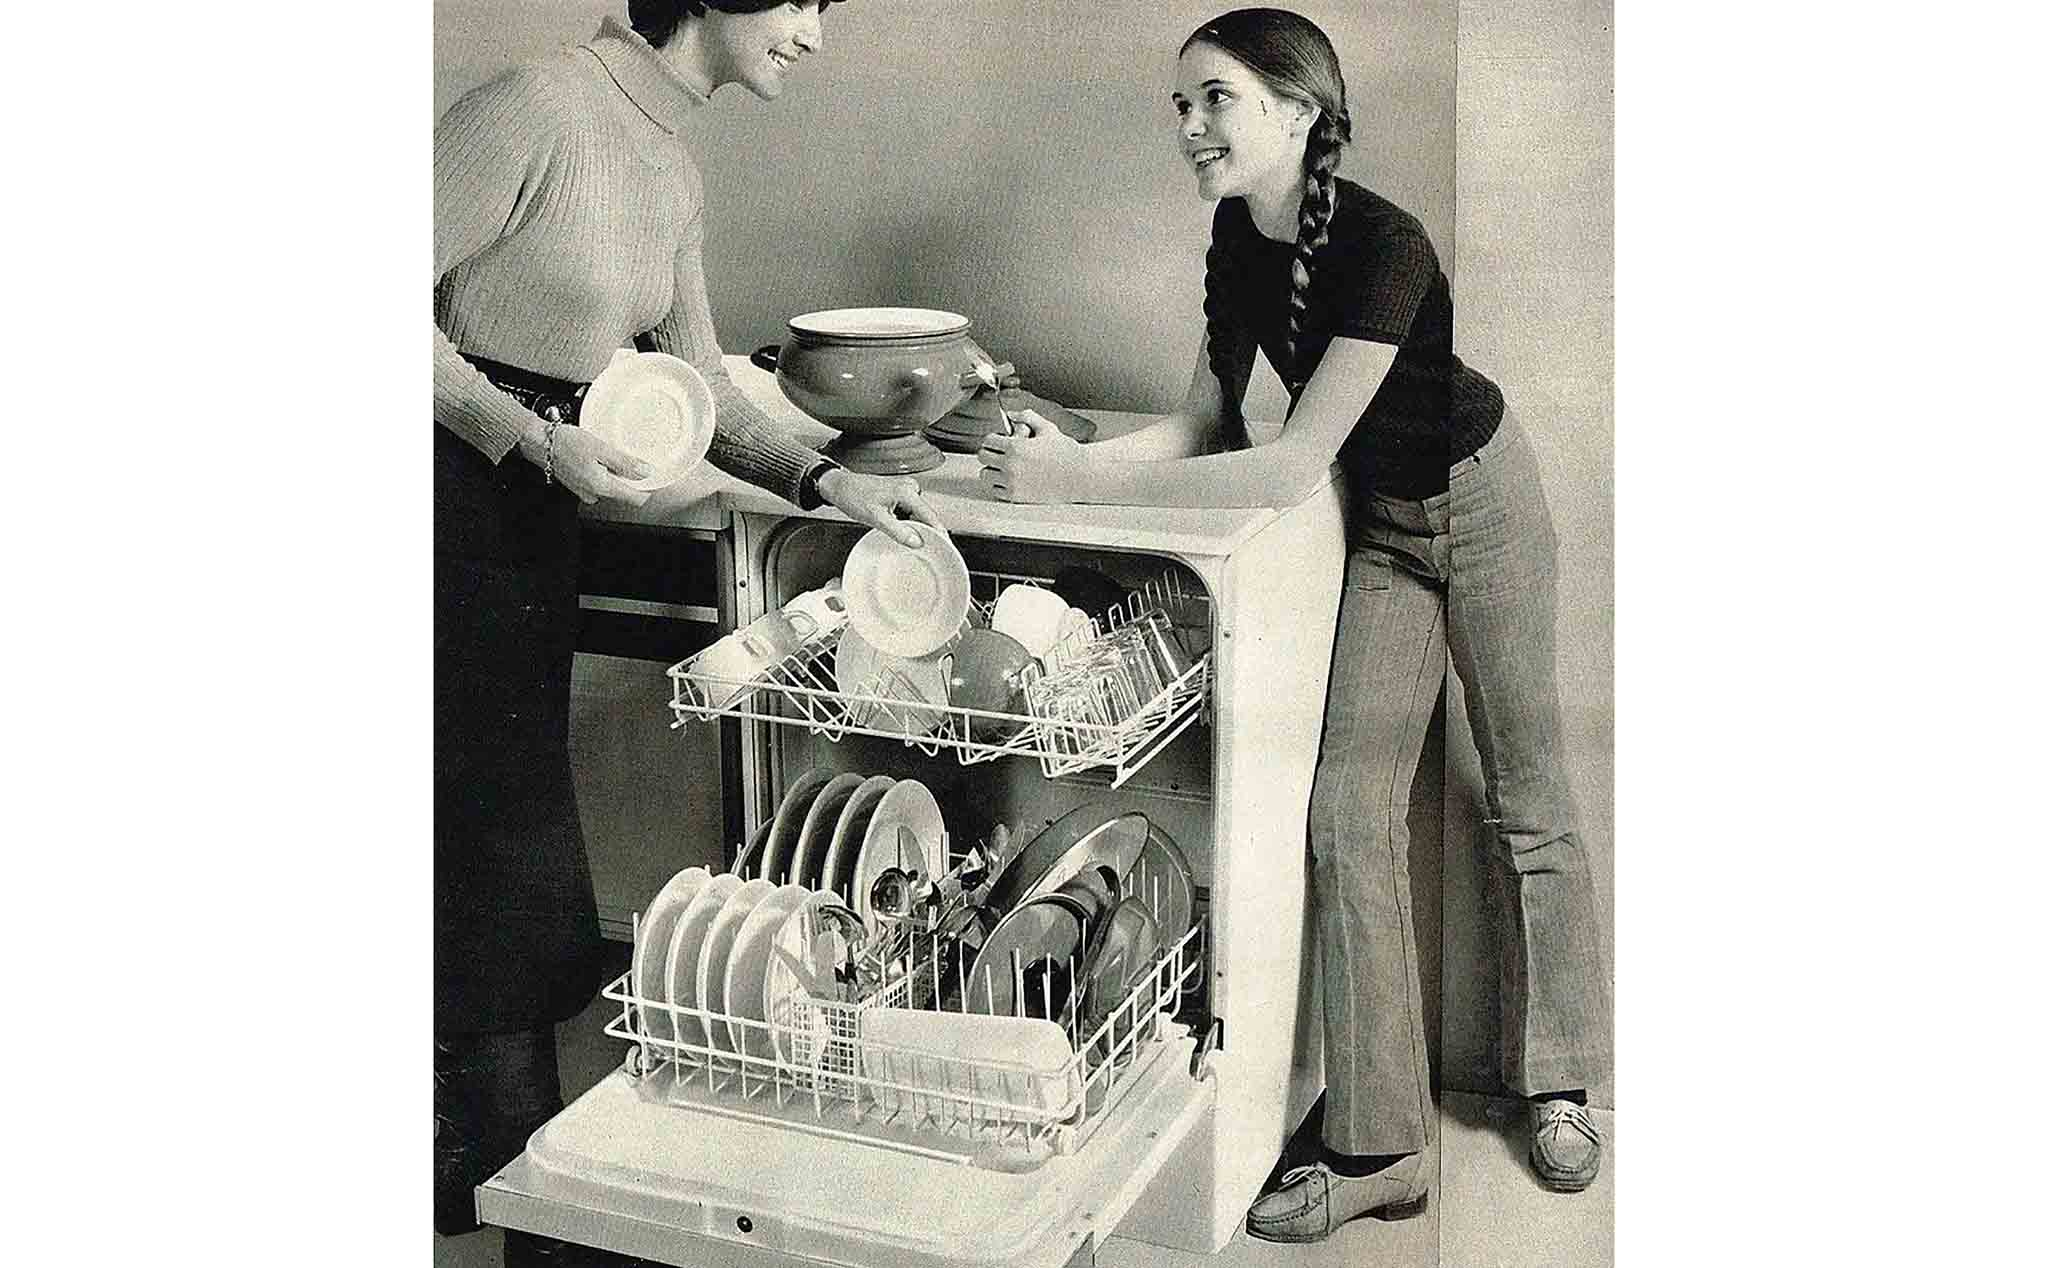 1940s dishwasher.jpg